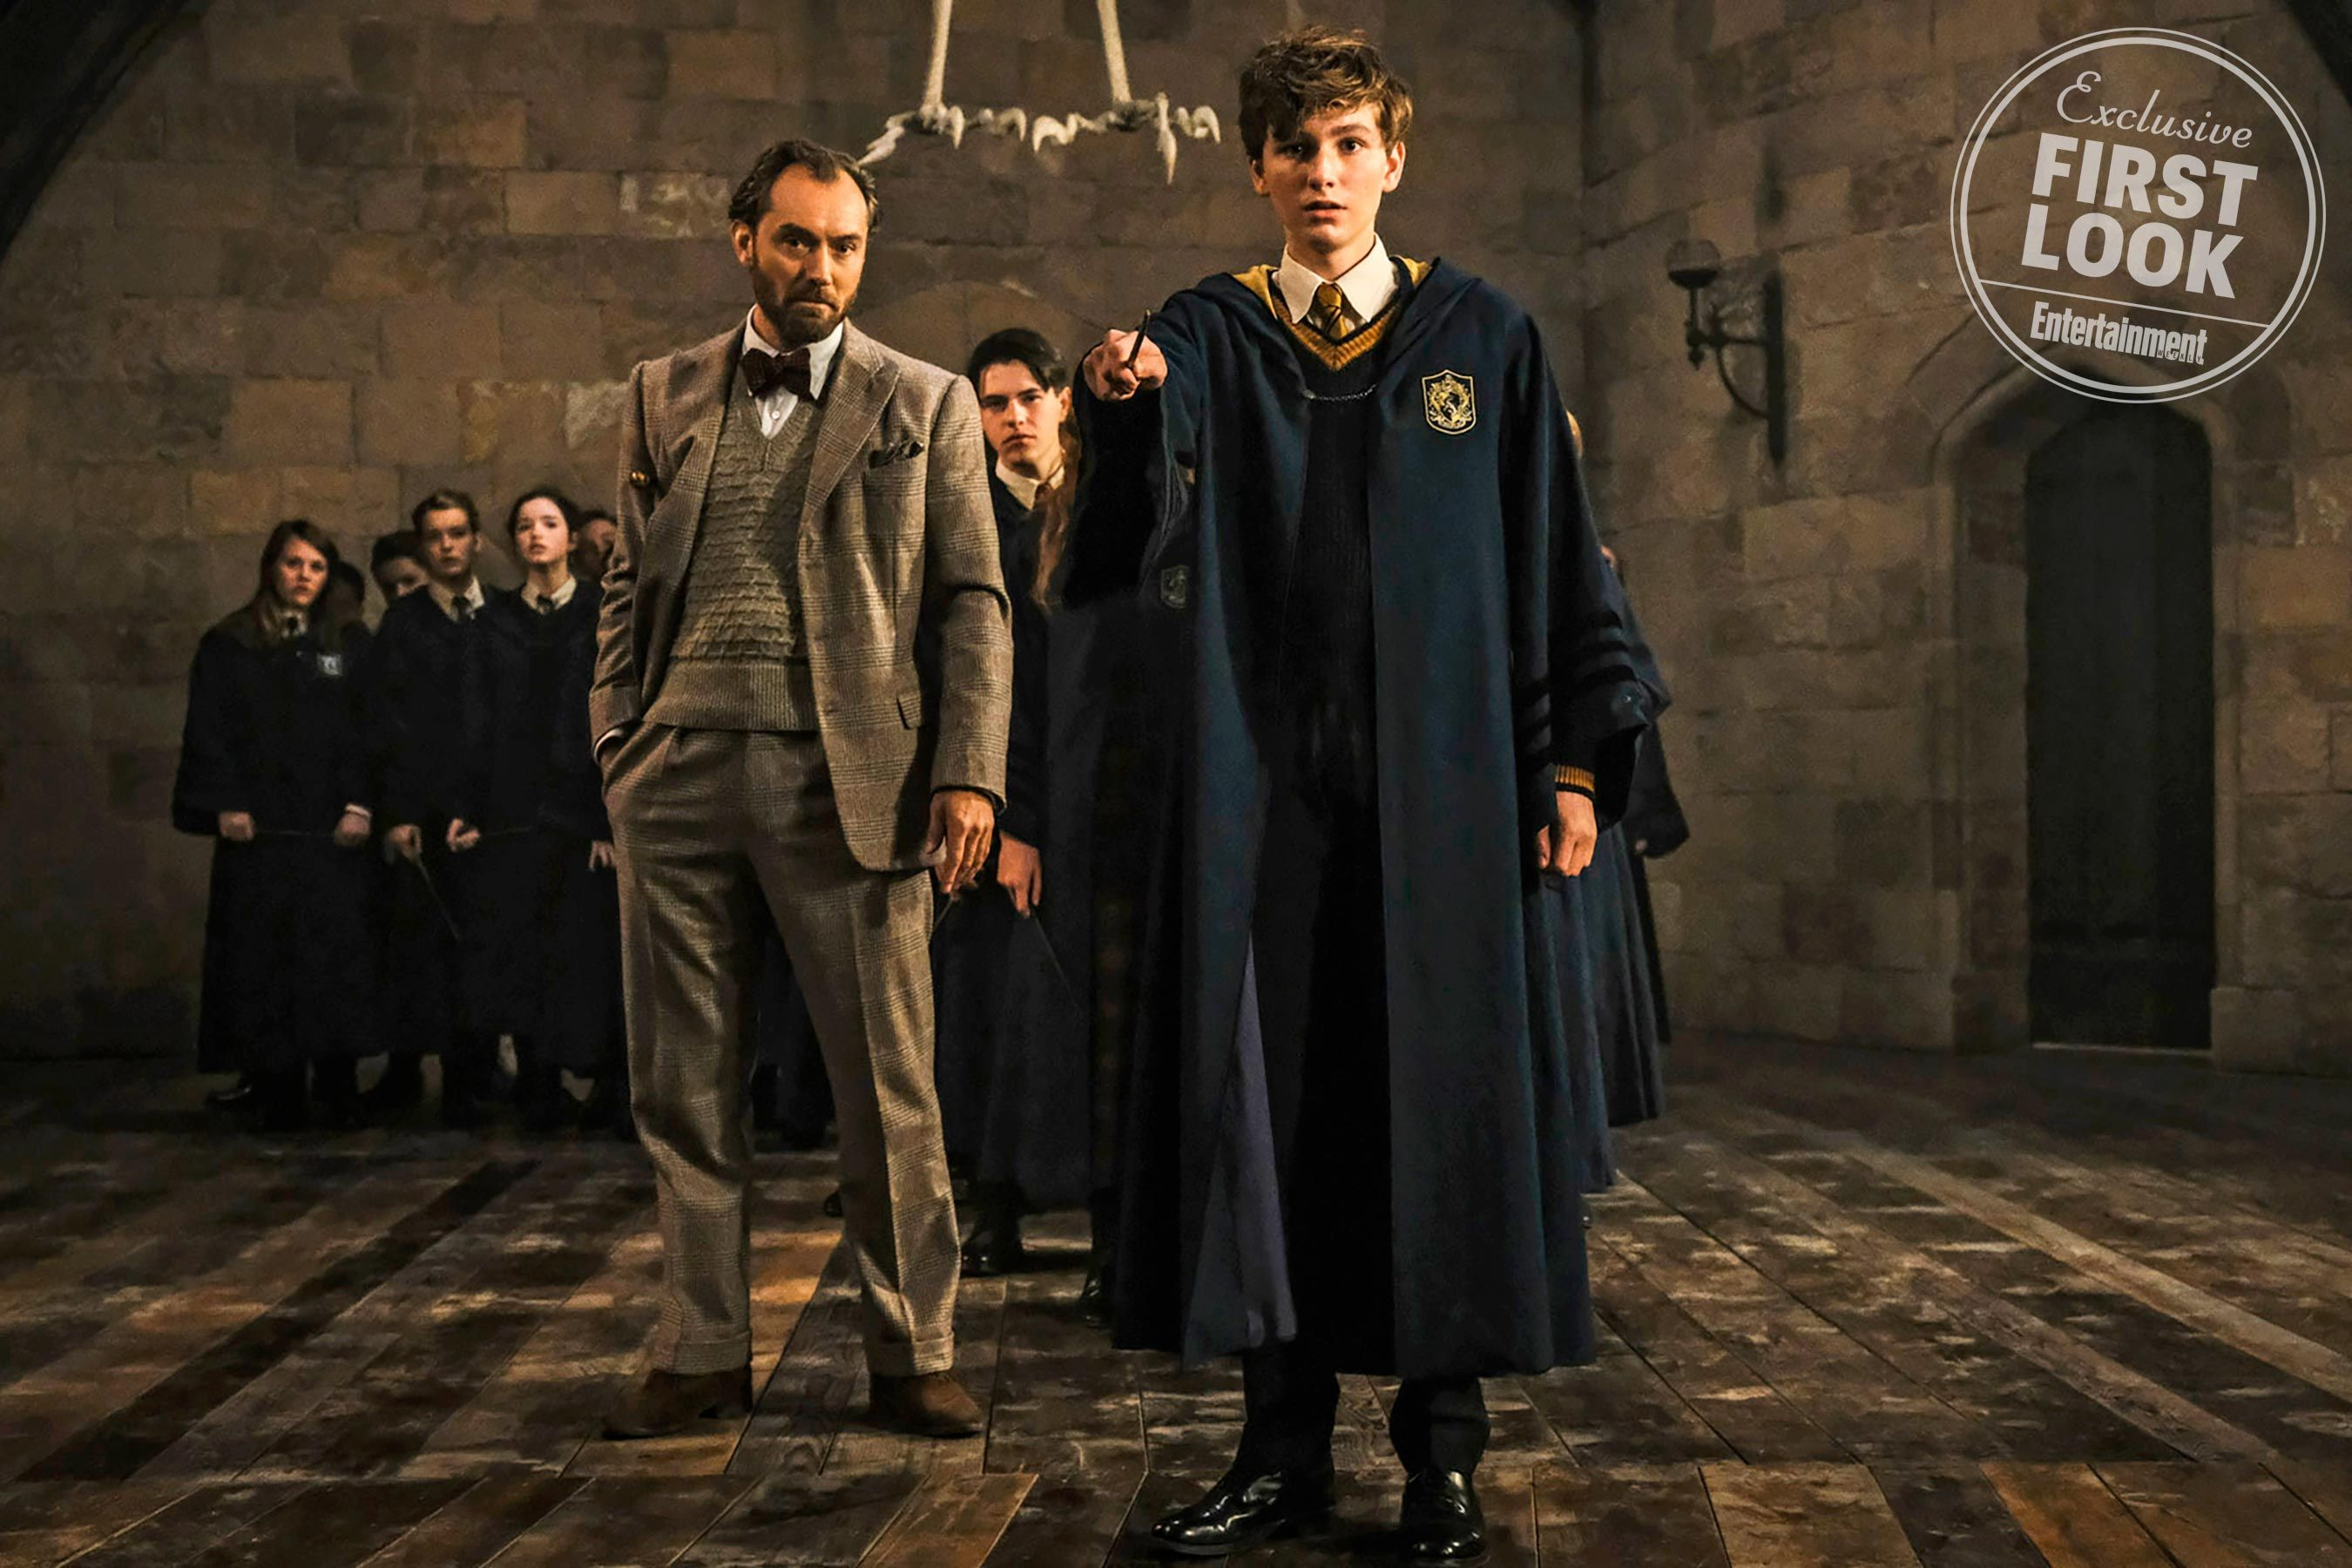 New Pic Released From Fantastic Beasts: The Crimes of Grindelwald